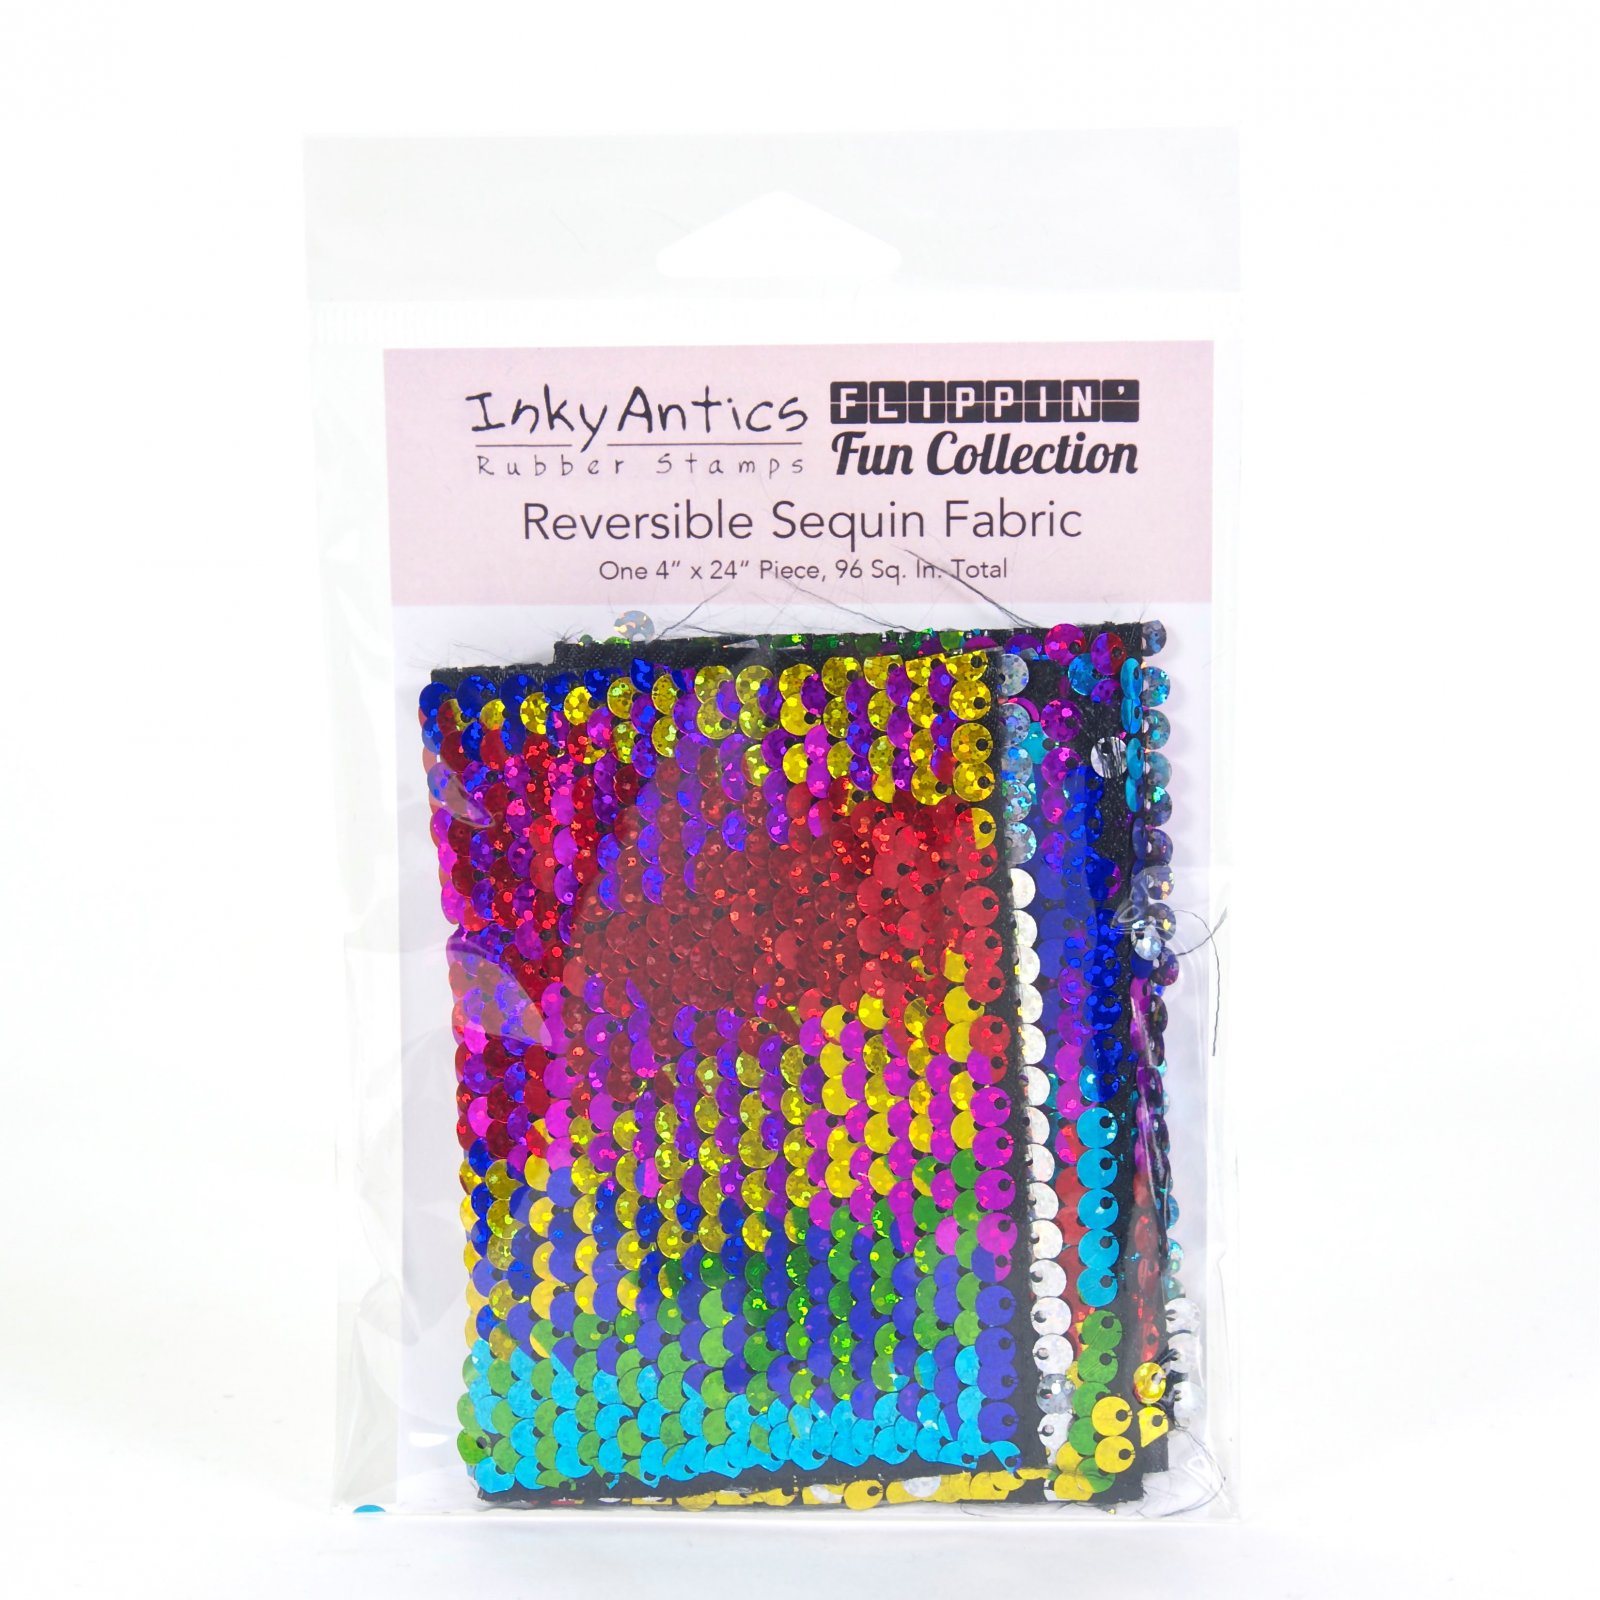 Inky Antics Reversible Sequin Fabric Rainbow to silver